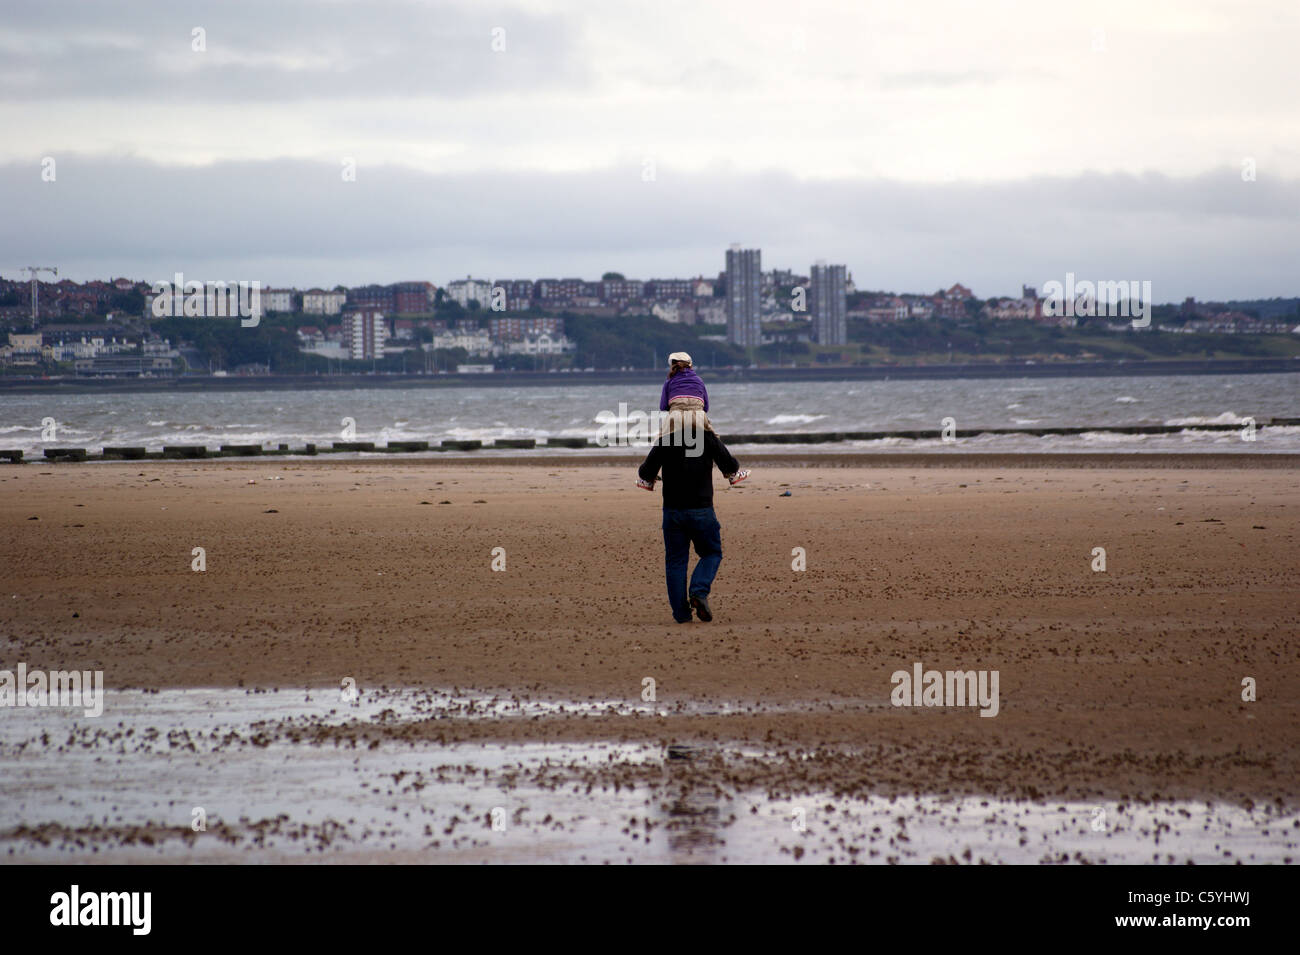 a-man-with-a-child-on-his-shoulders-crosby-beach-with-birkenhead-in-C5YHWJ.jpg